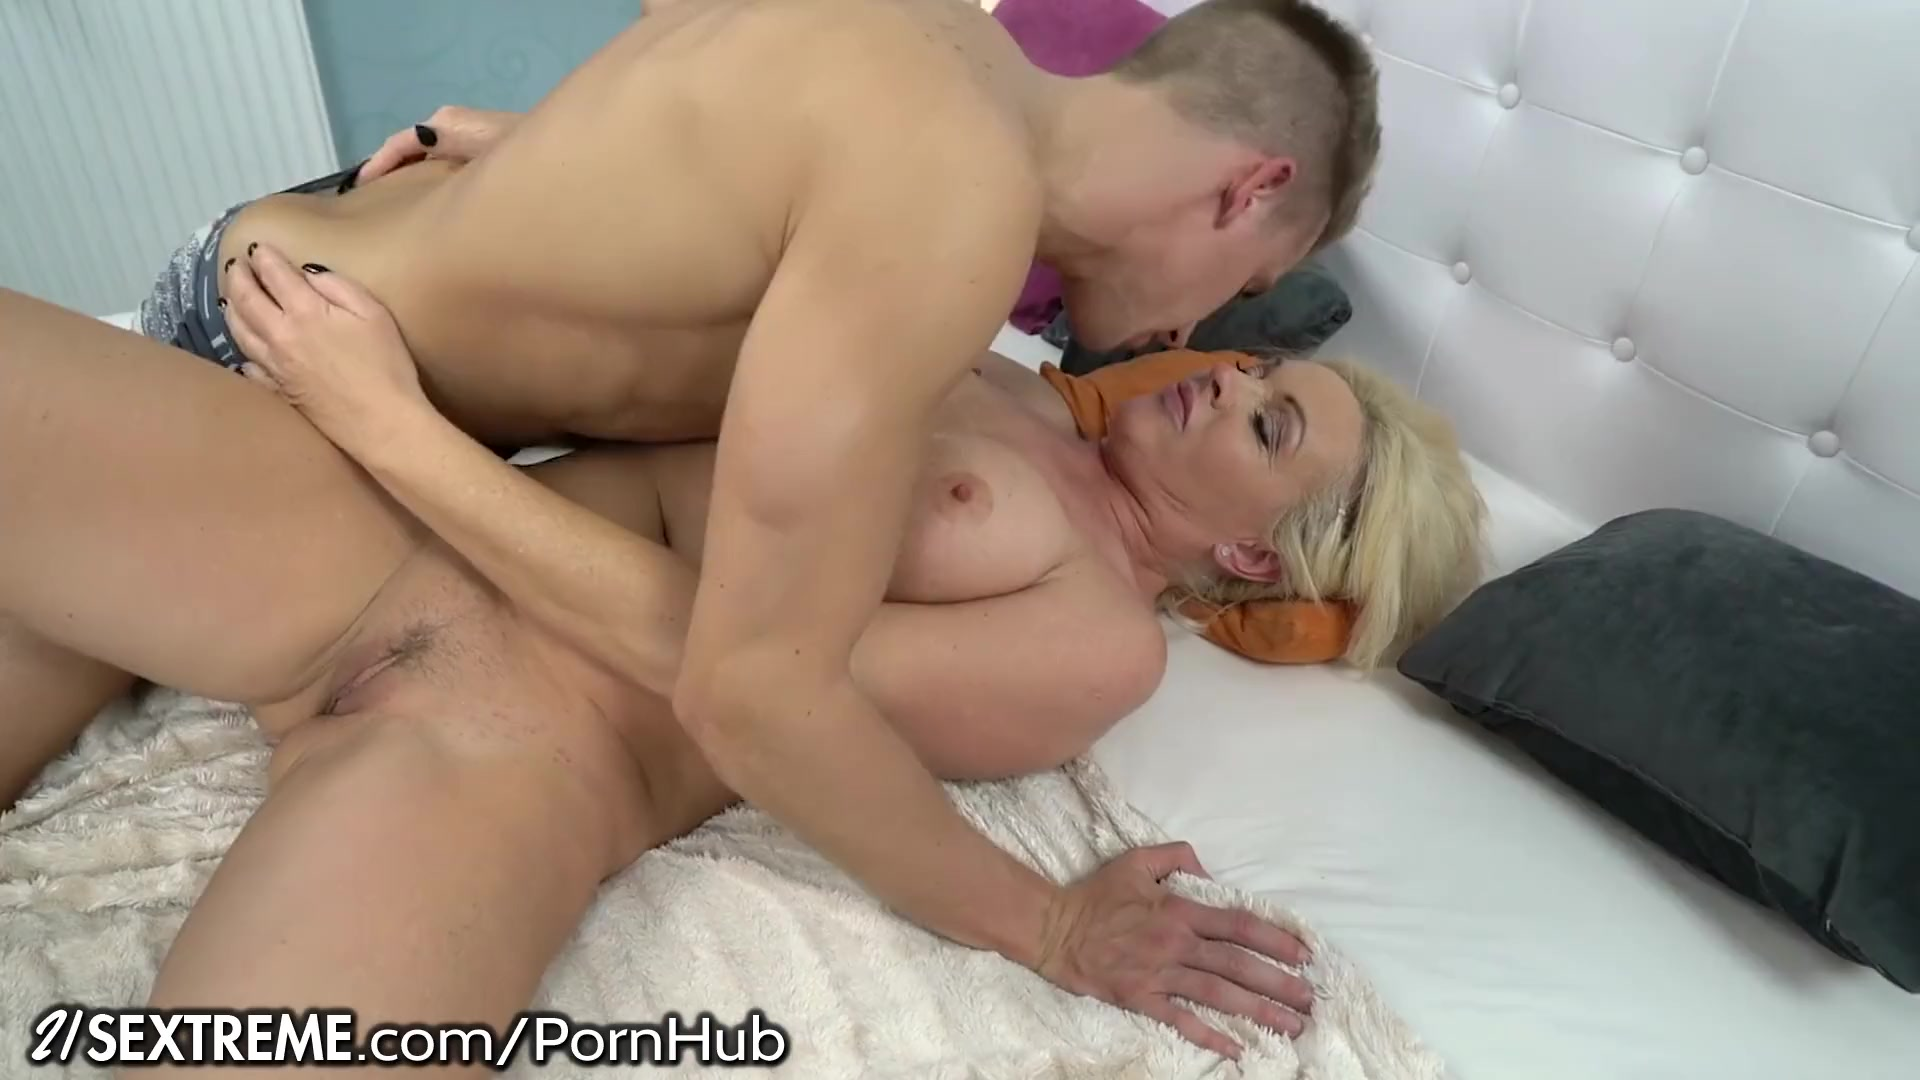 Preview 1 of Stunning Mature Rides Young Stud's Cock And Eats Gooey Load